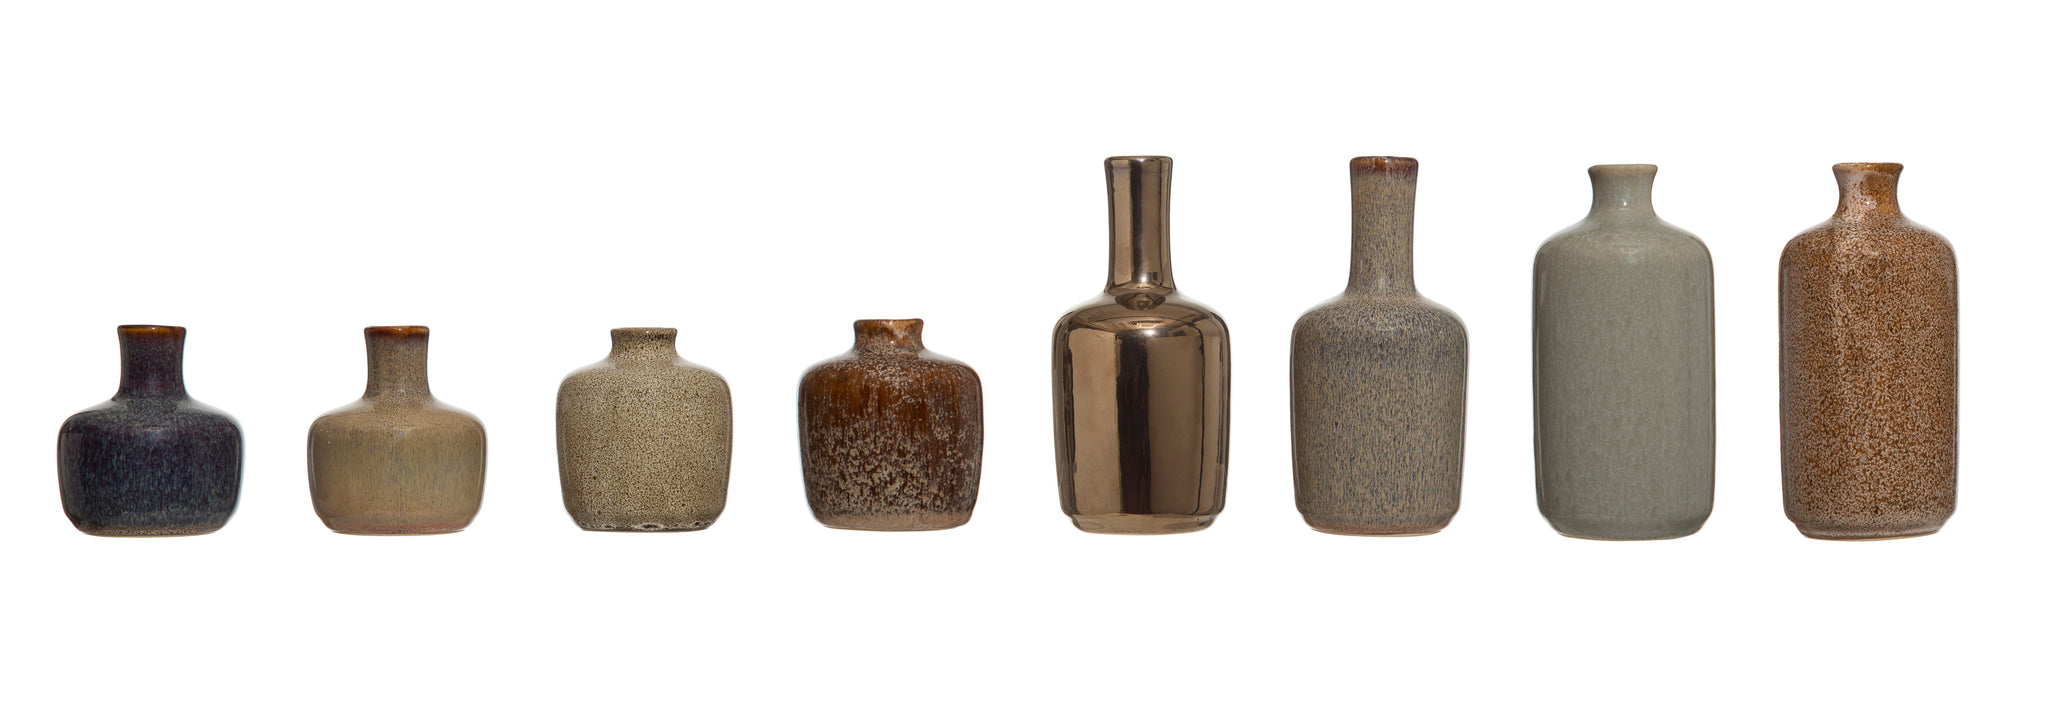 Stoneware Vases with Reactive Glaze Finish (Set of 8 Styles)